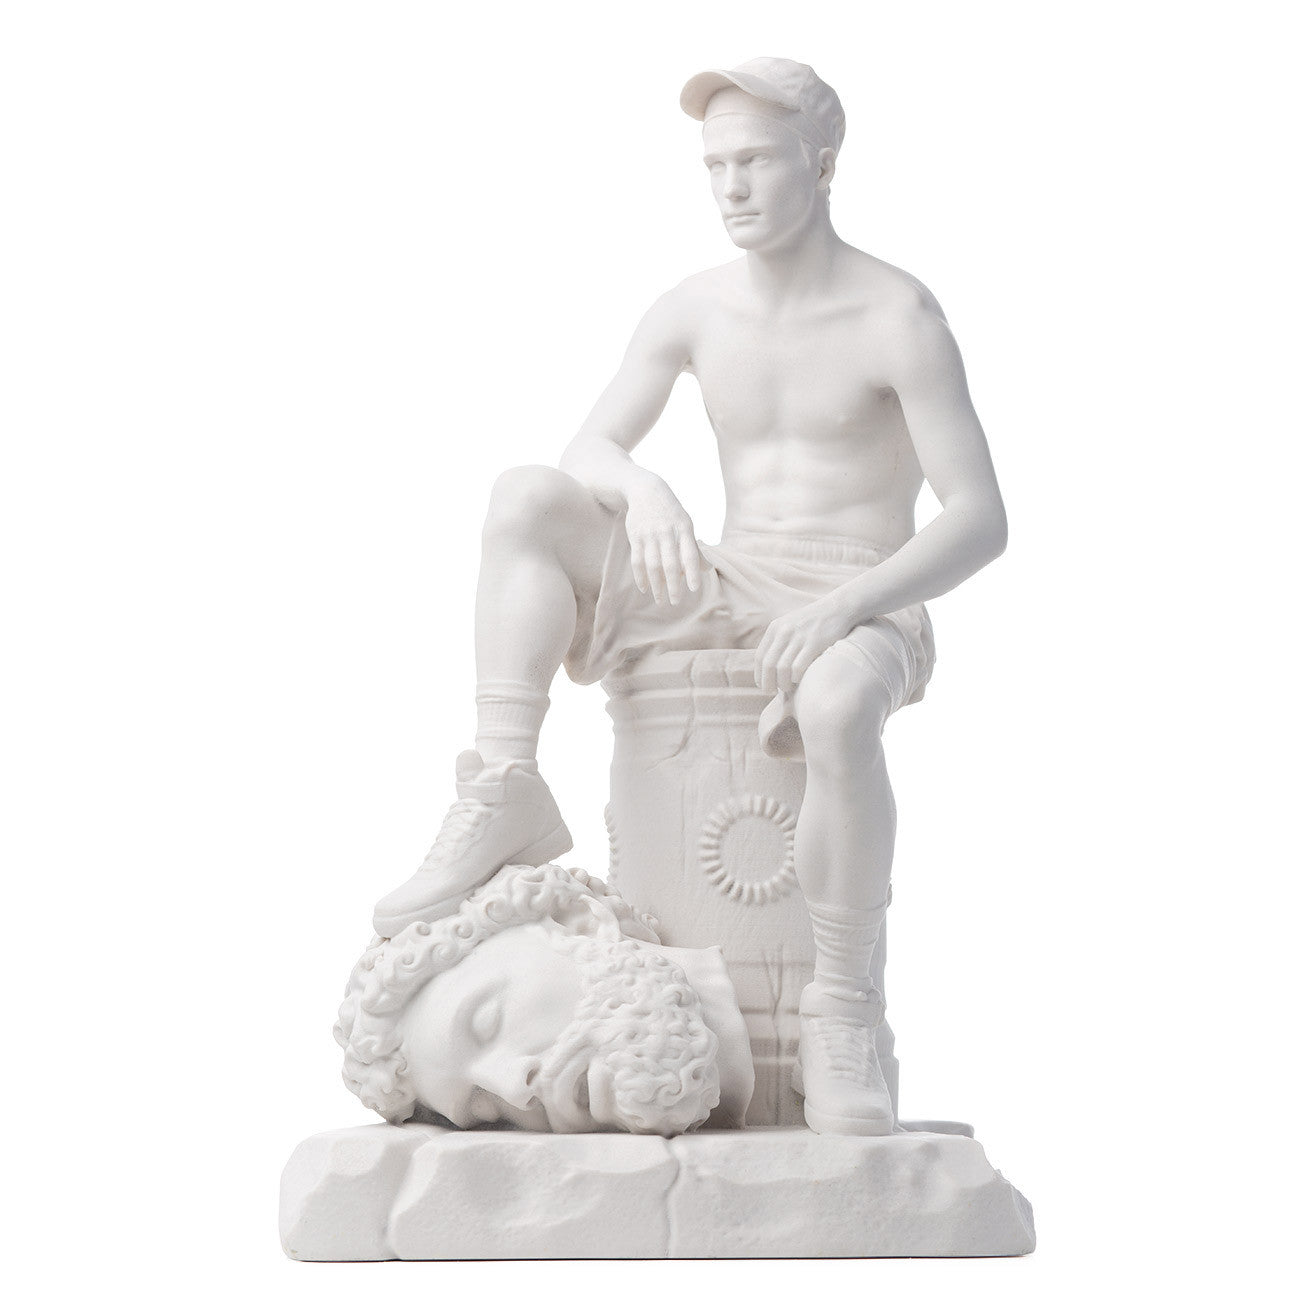 'David & Goliath' Limited Edition Marble Sculpture